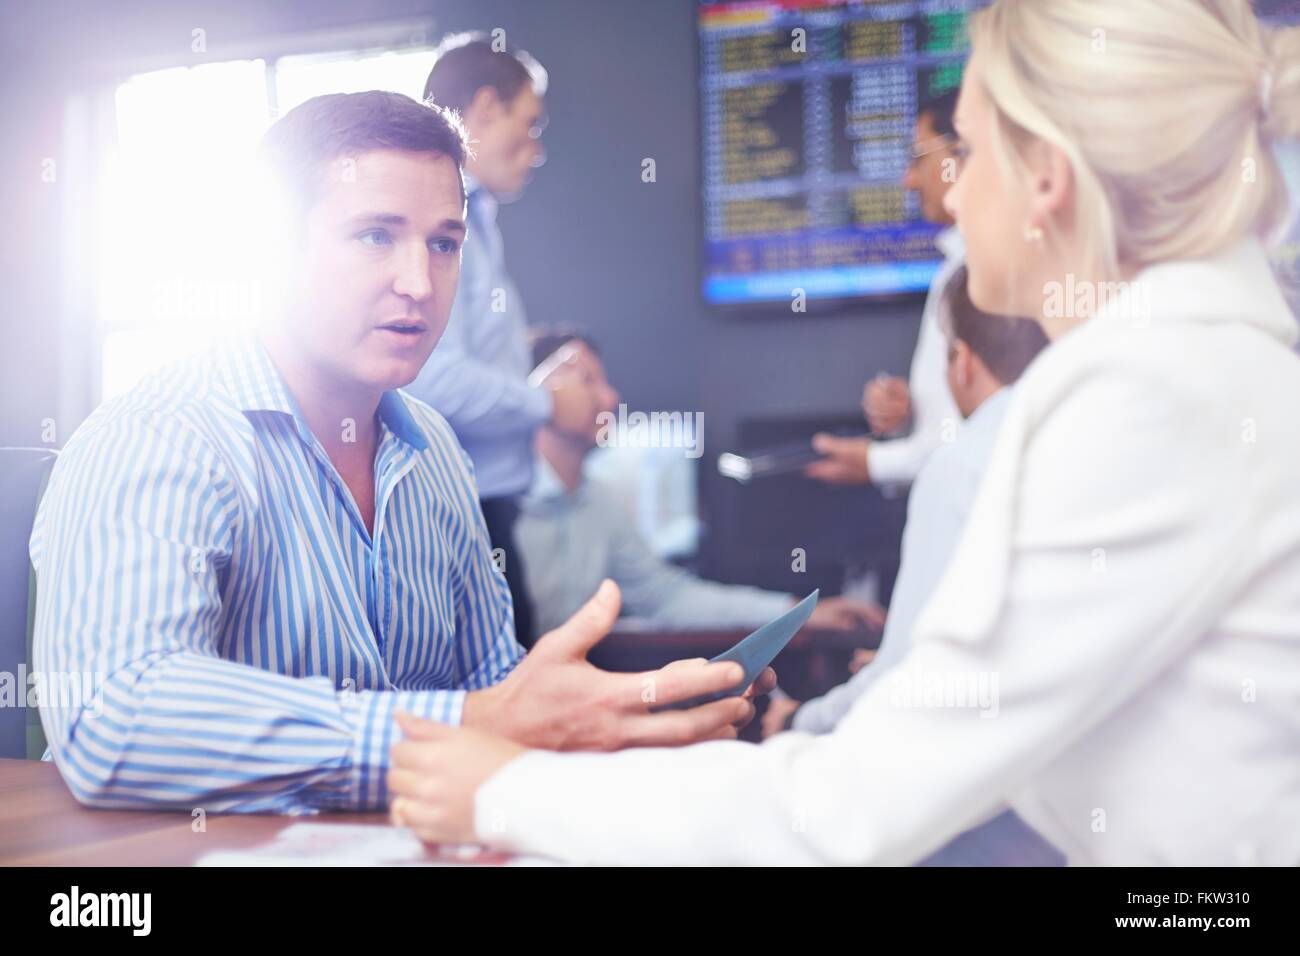 Business man and business woman in  fice face to face having discussion - Stock Image